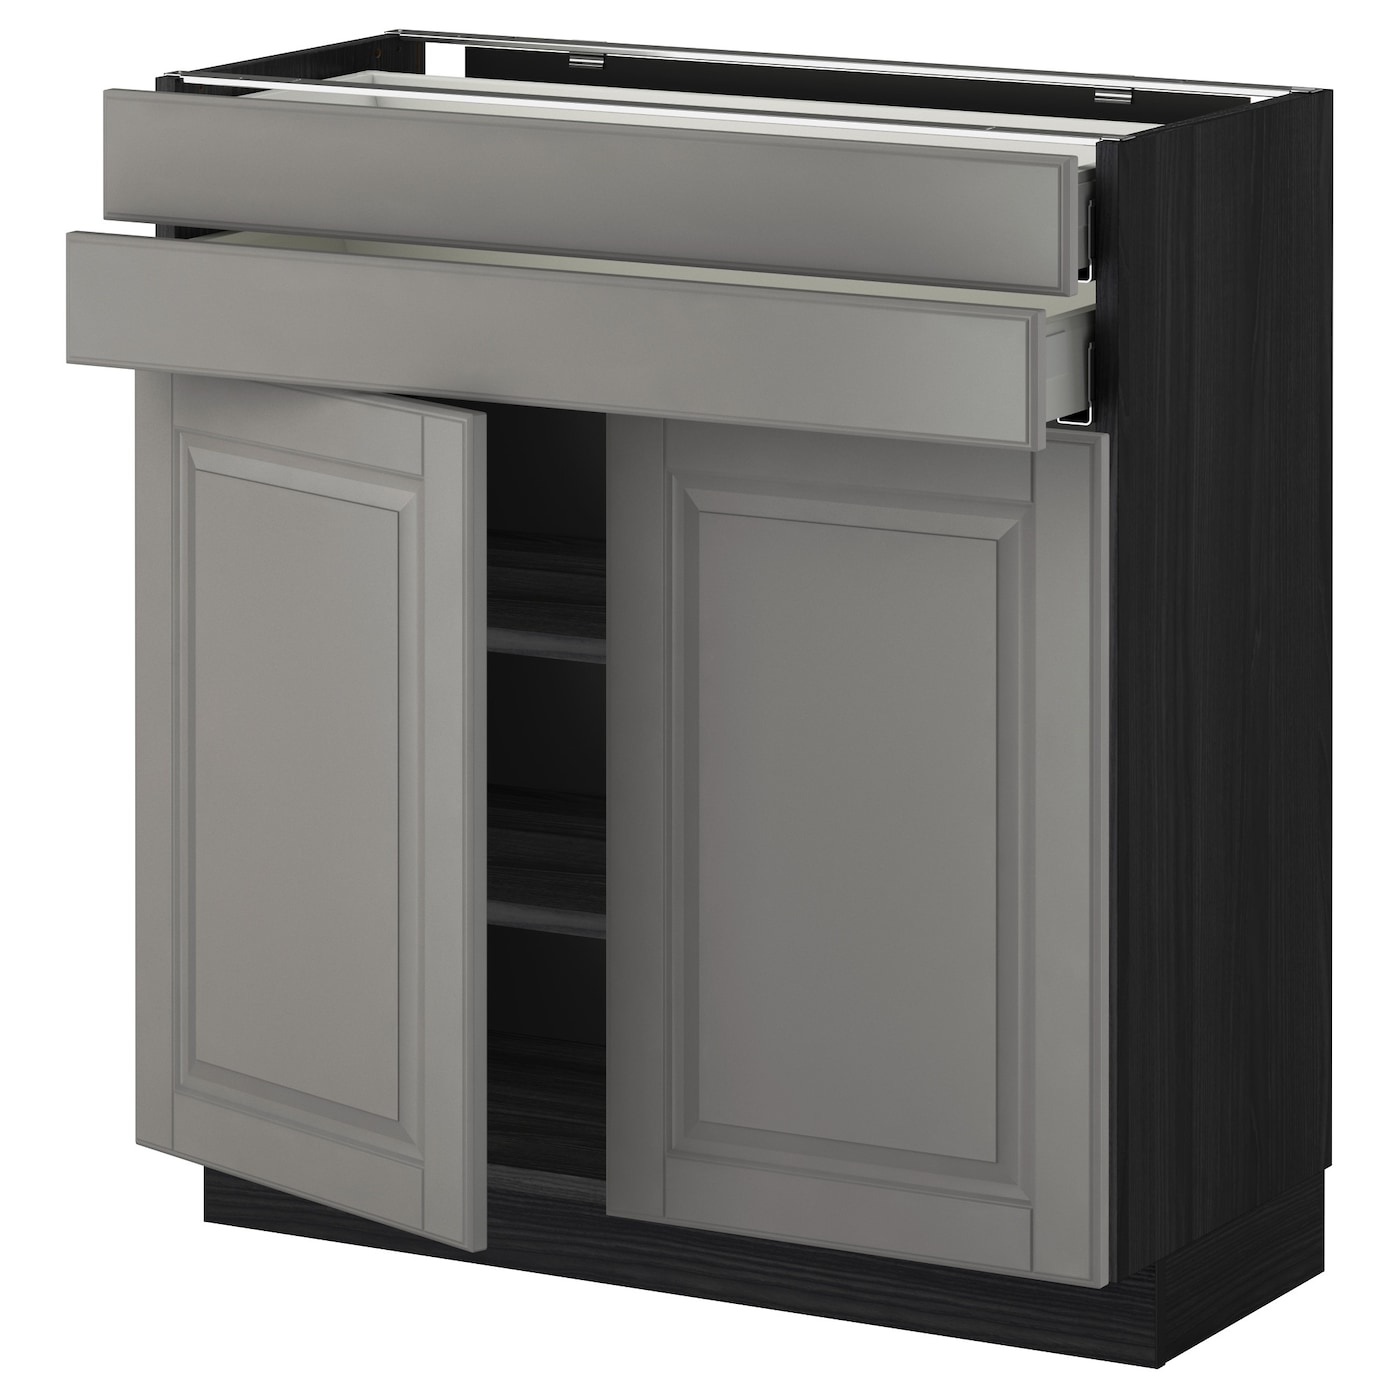 metod maximera base cabinet w 2 doors 2 drawers black bodbyn grey 80 x 37 cm ikea. Black Bedroom Furniture Sets. Home Design Ideas